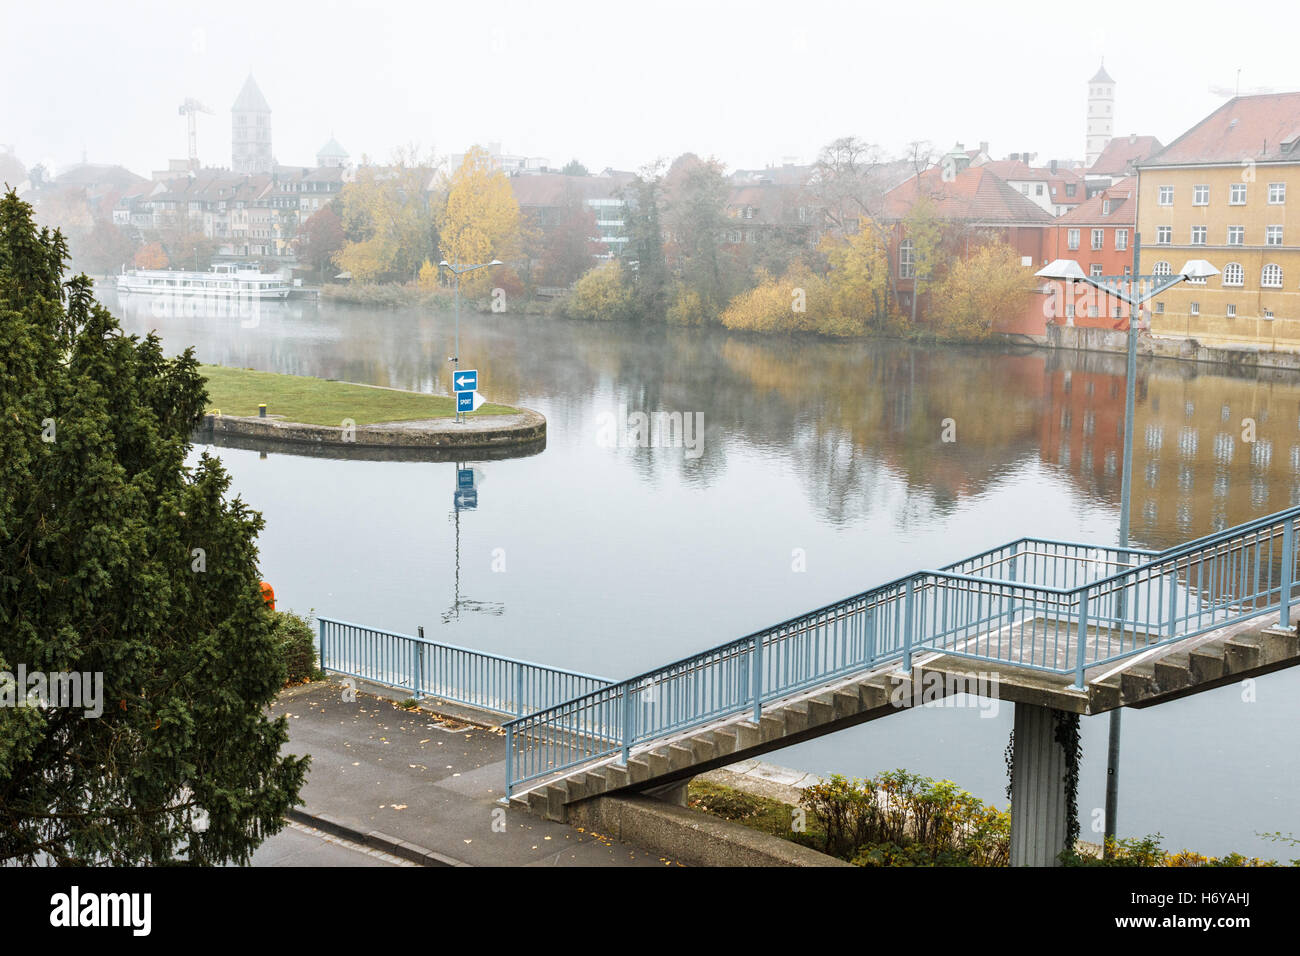 European old city with river in autumn - Stock Image